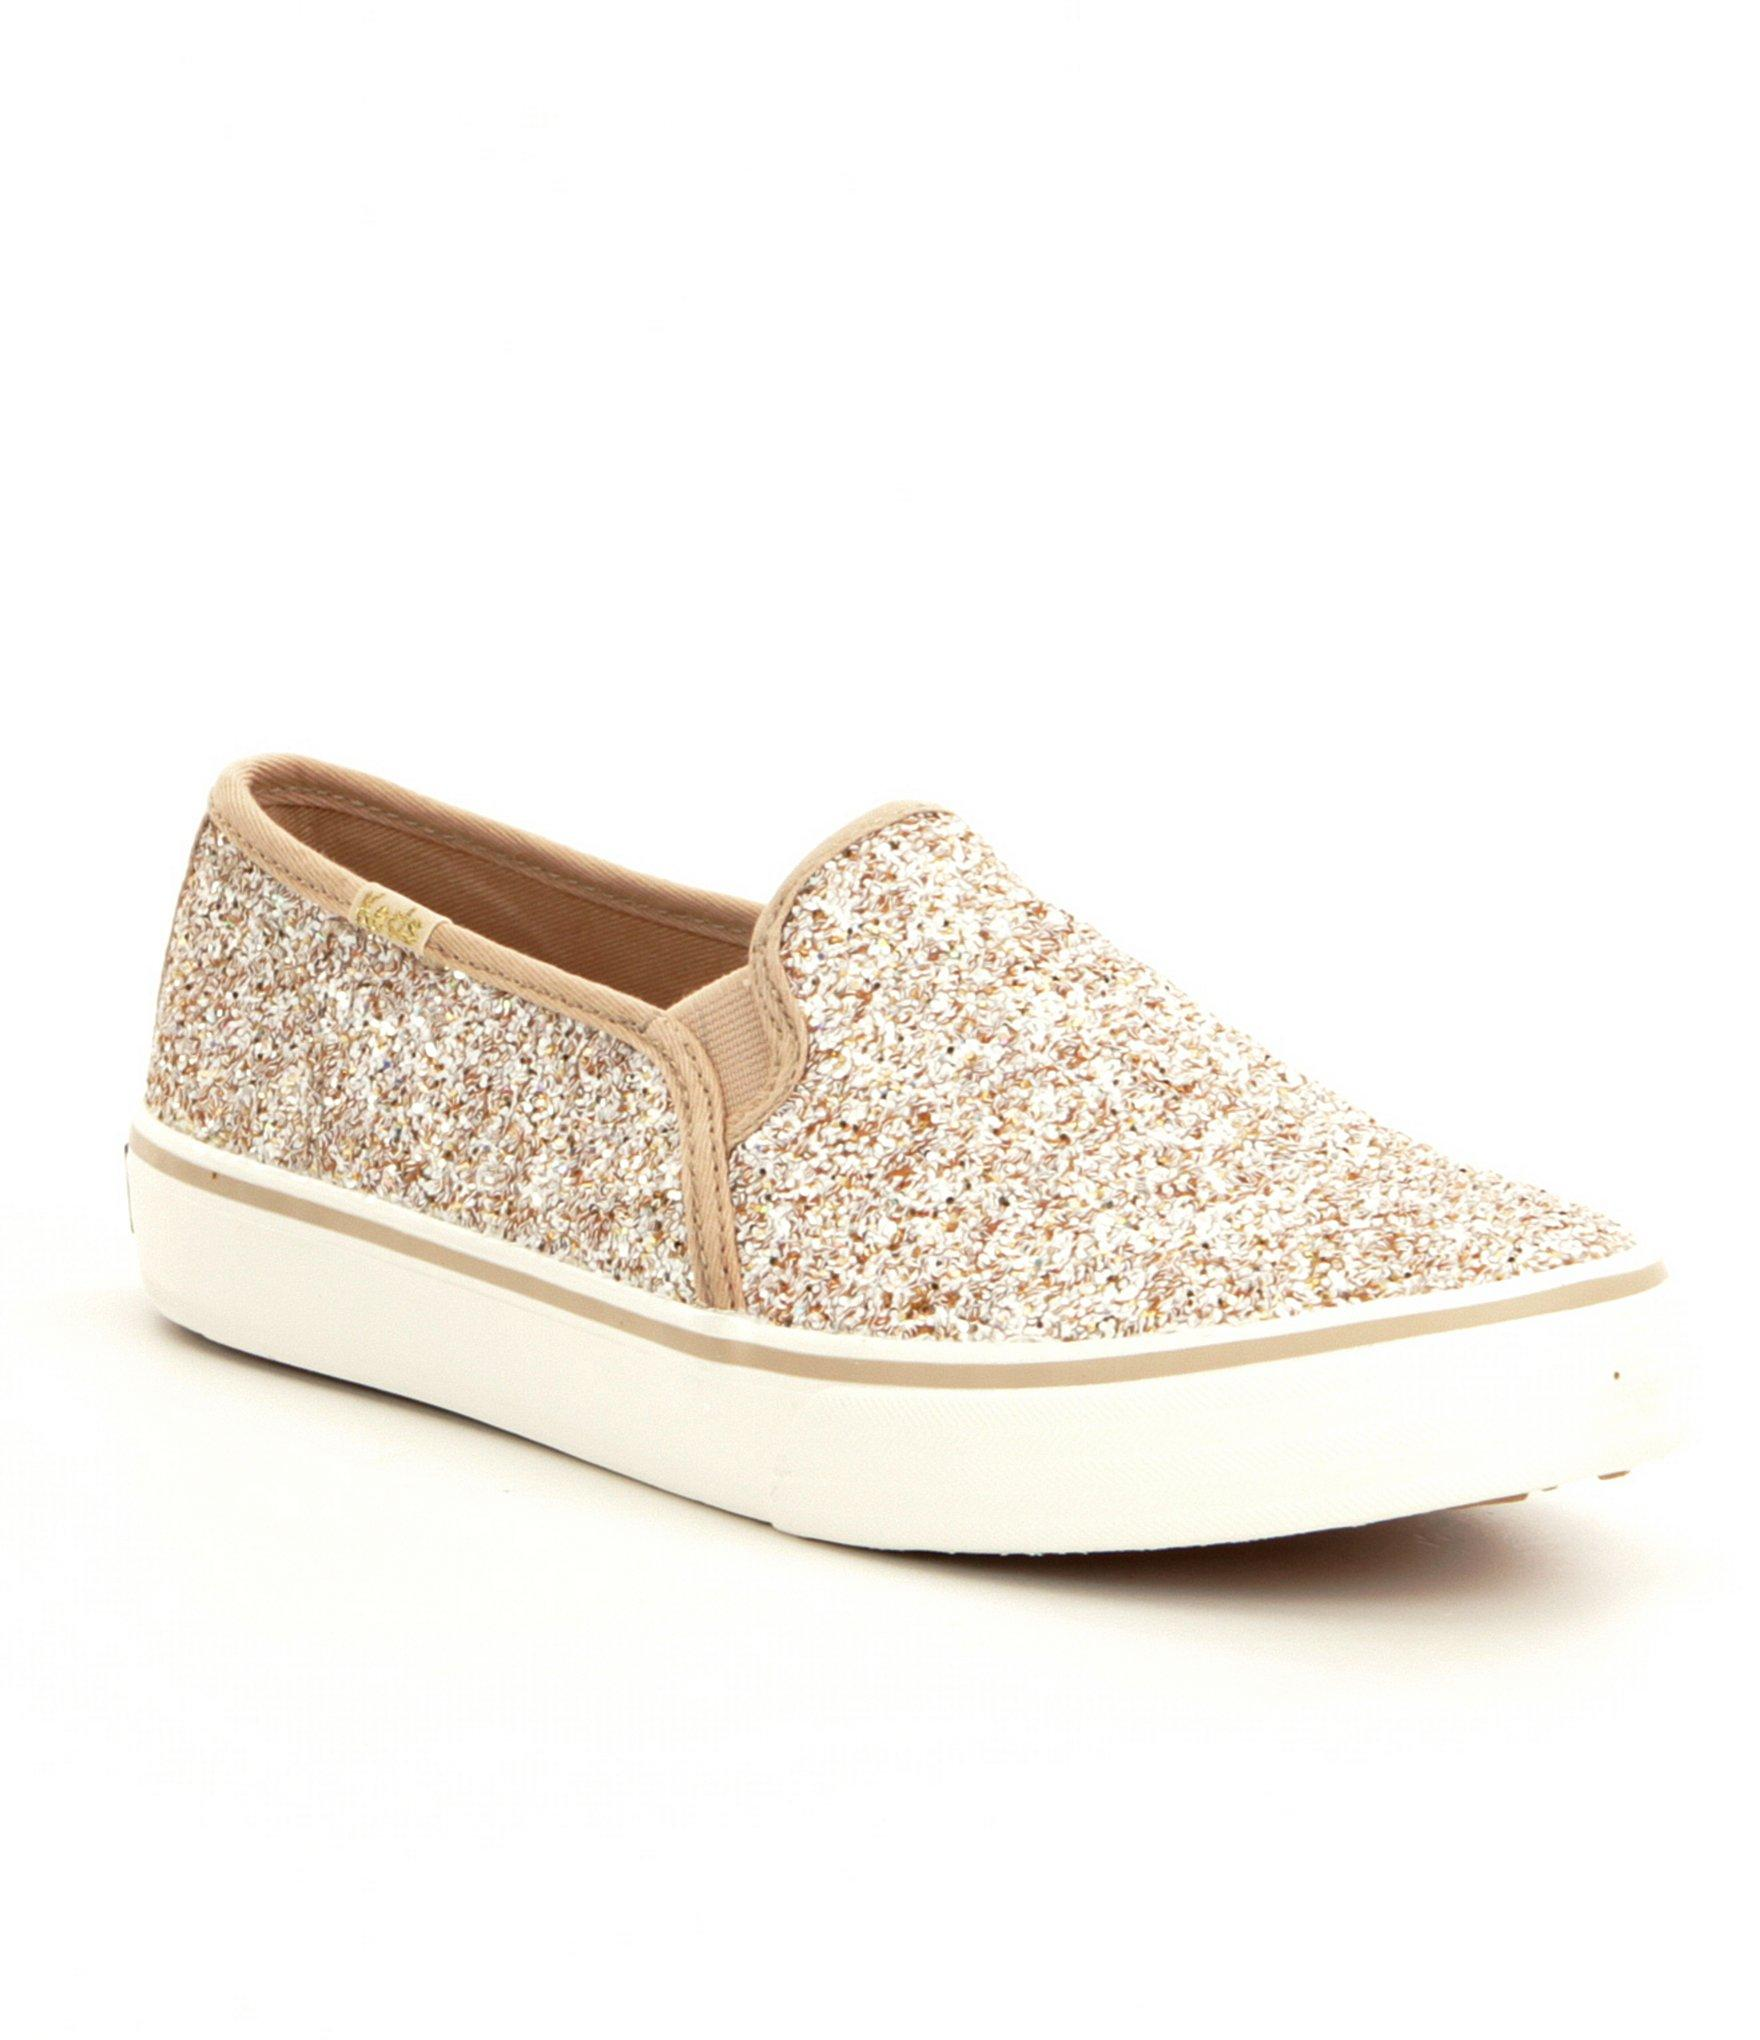 b047876d9256 Lyst - Keds Double Decker Glitter Slip On Sneakers in Metallic